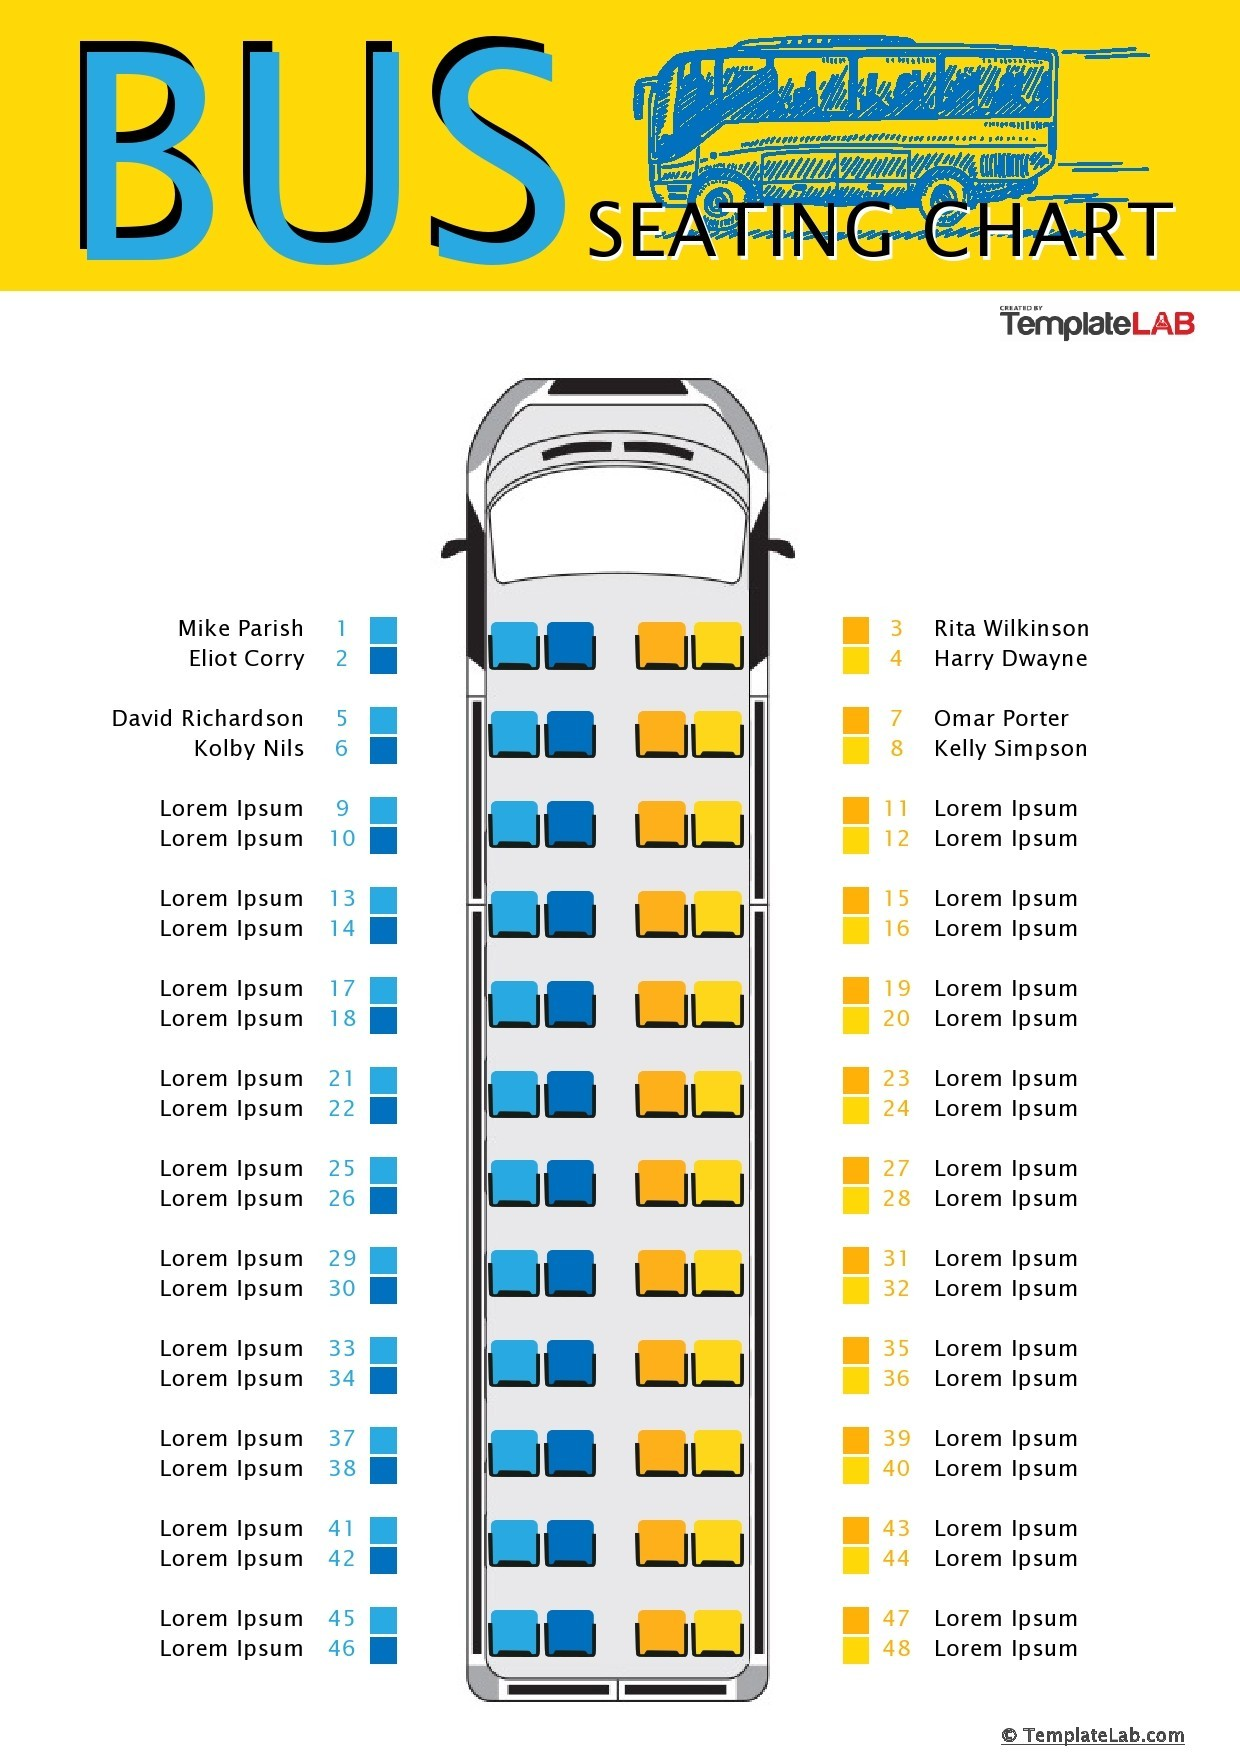 Free Bus Seating Chart Template - TemplateLab.com